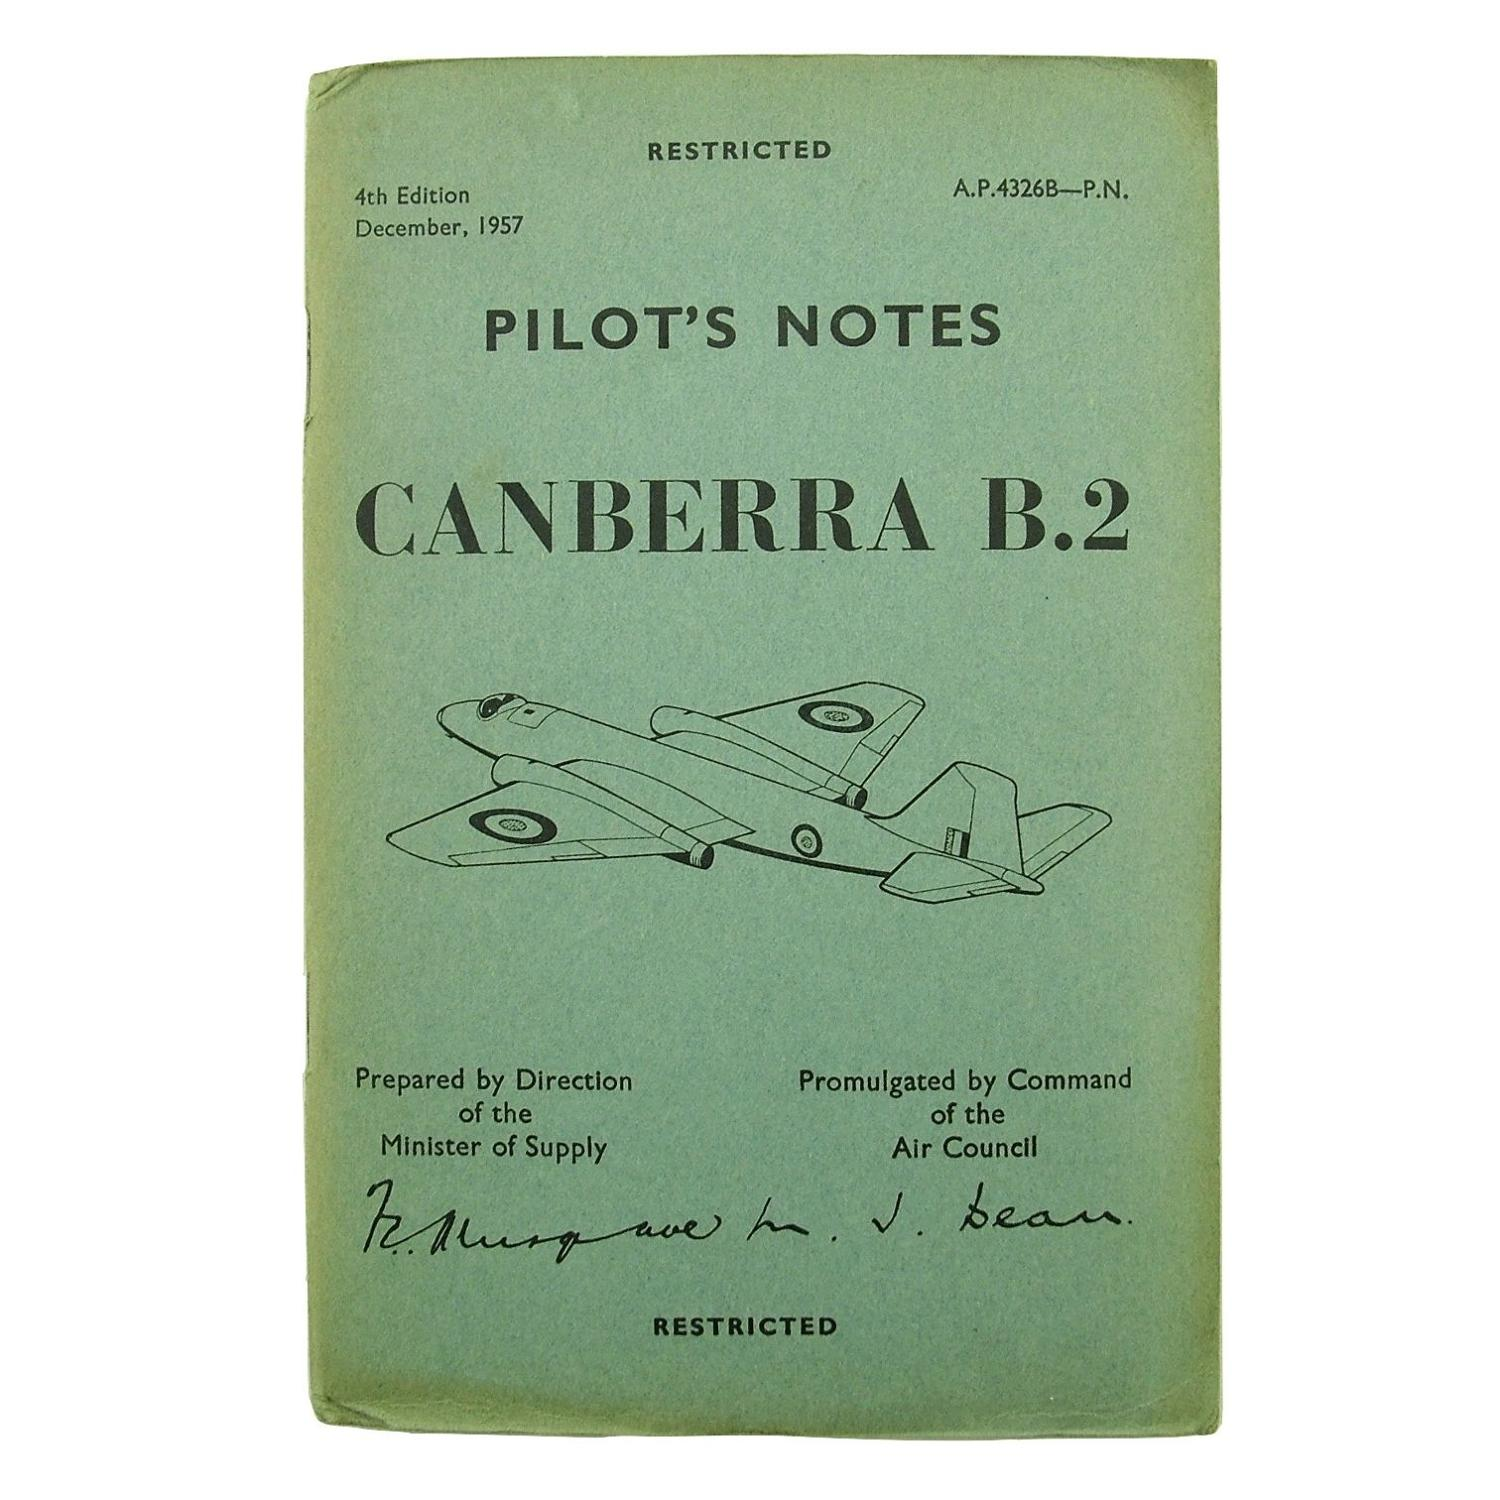 RAF Pilot's notes - Canberra B.2